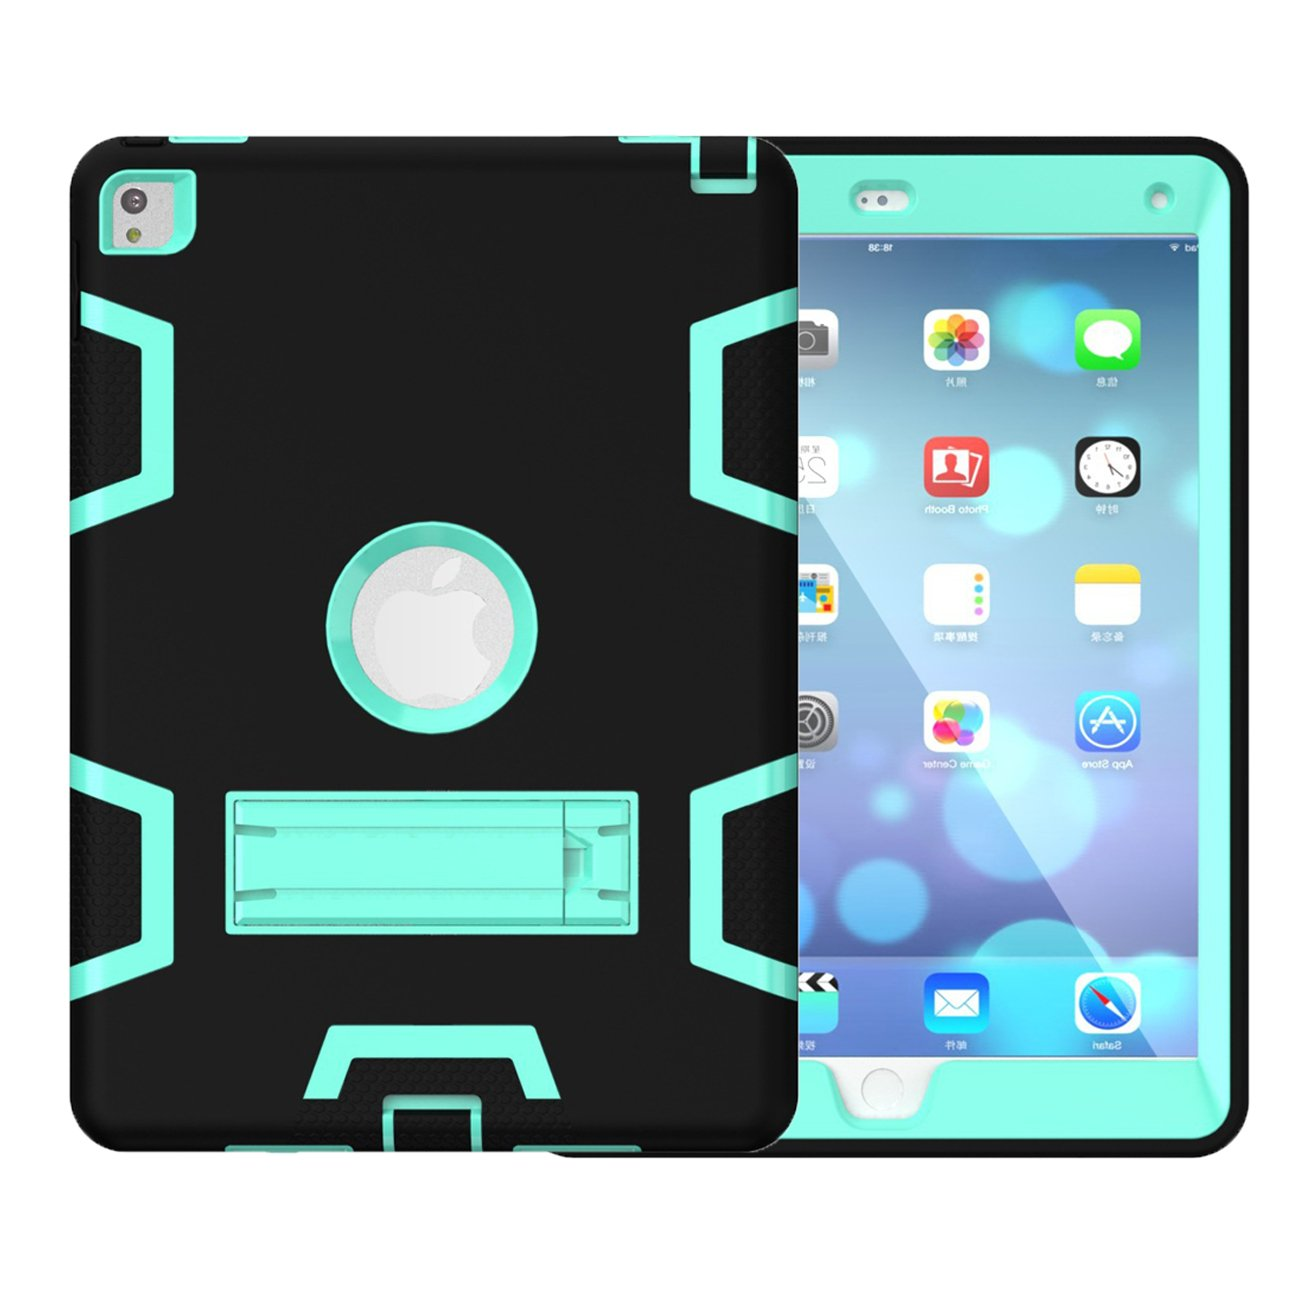 iPad Mini 4 Case,HEAVY DUTY Armor 3 in 1 Built-in Stand Rugged Cover Dust-Proof Shockproof Drop-Proof Scratch-resistant Anti-slip Cover Full Protective for Apple iPad Mini 4-Black/Mint Green